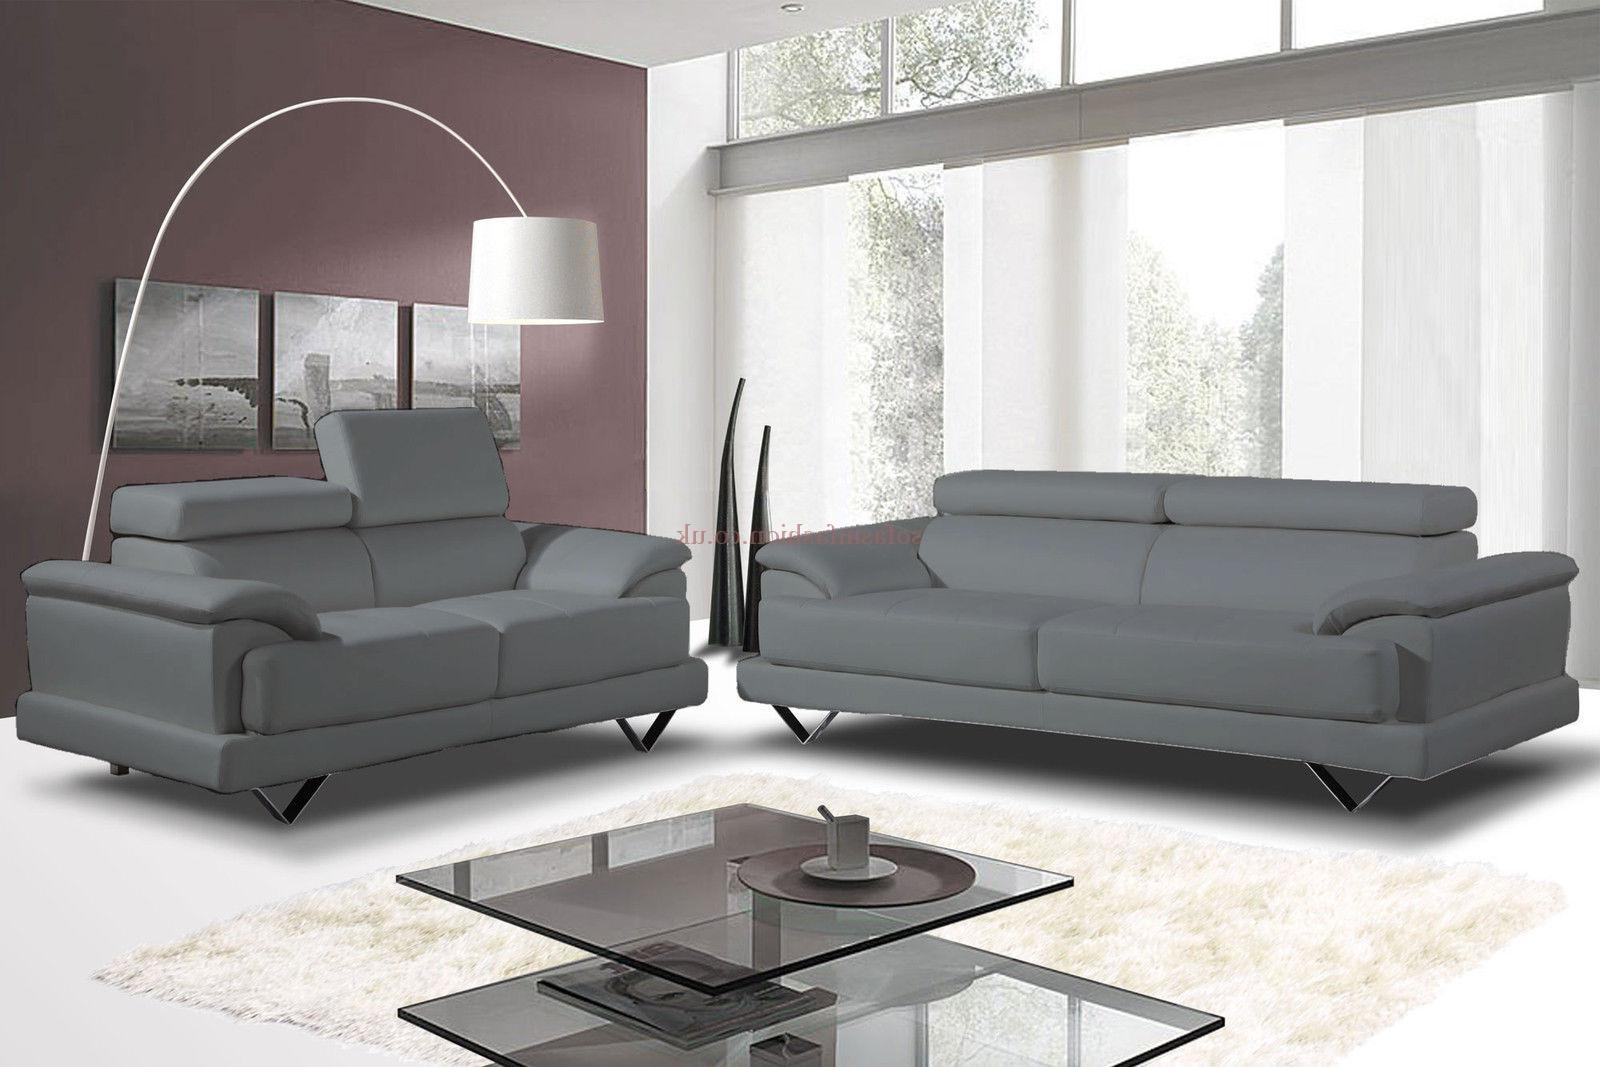 Most Popular Sectional Sofas At Aarons Inside Sofa : Gray Sofa Set Light Grey Sofa Aarons Sectionals Sofas (View 10 of 20)